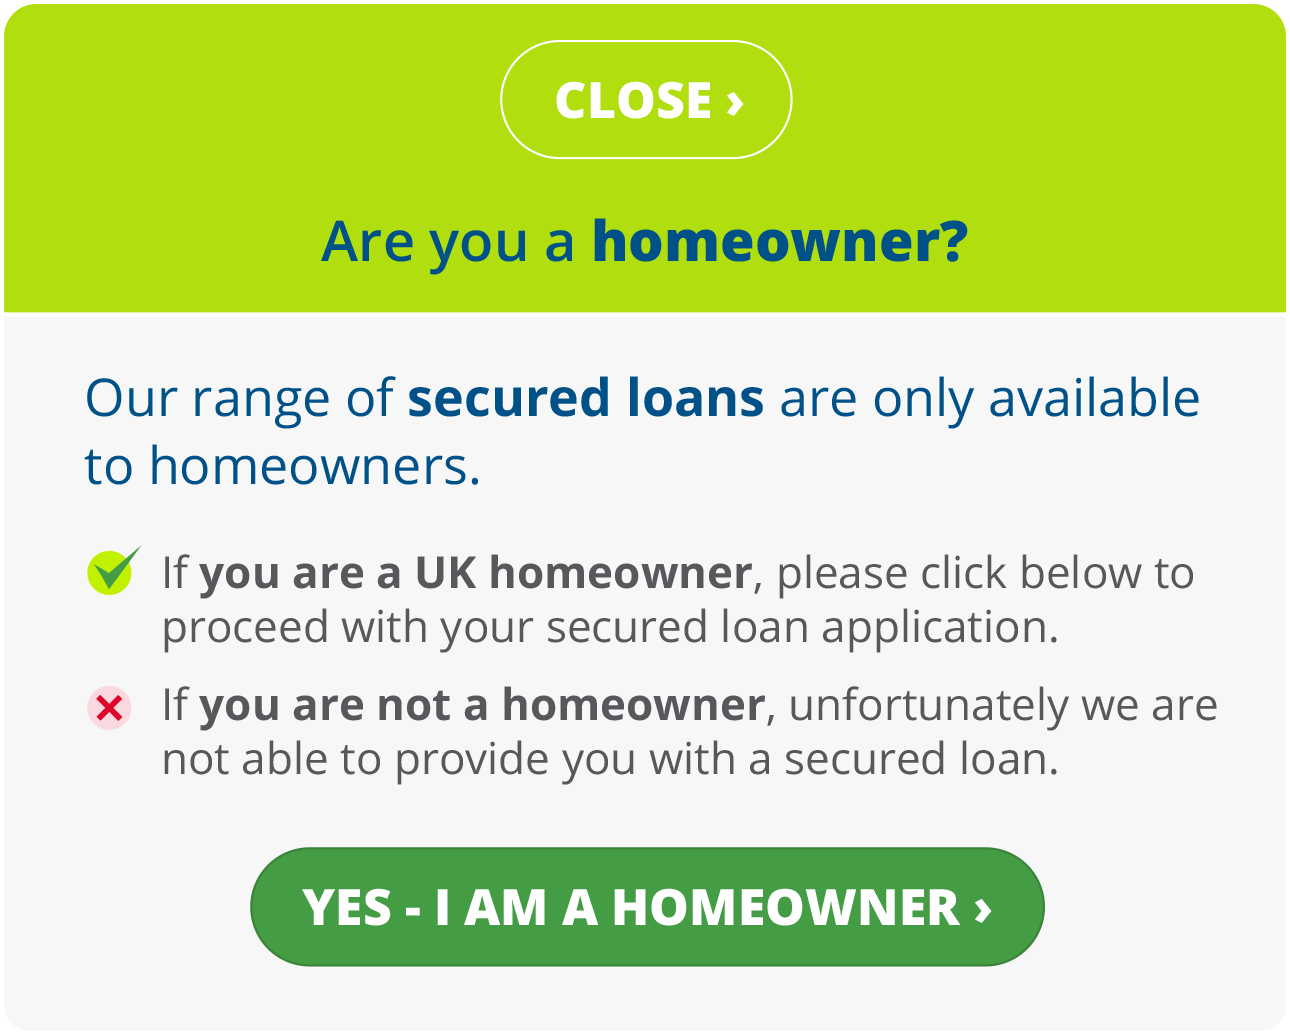 Are you a homeowner?